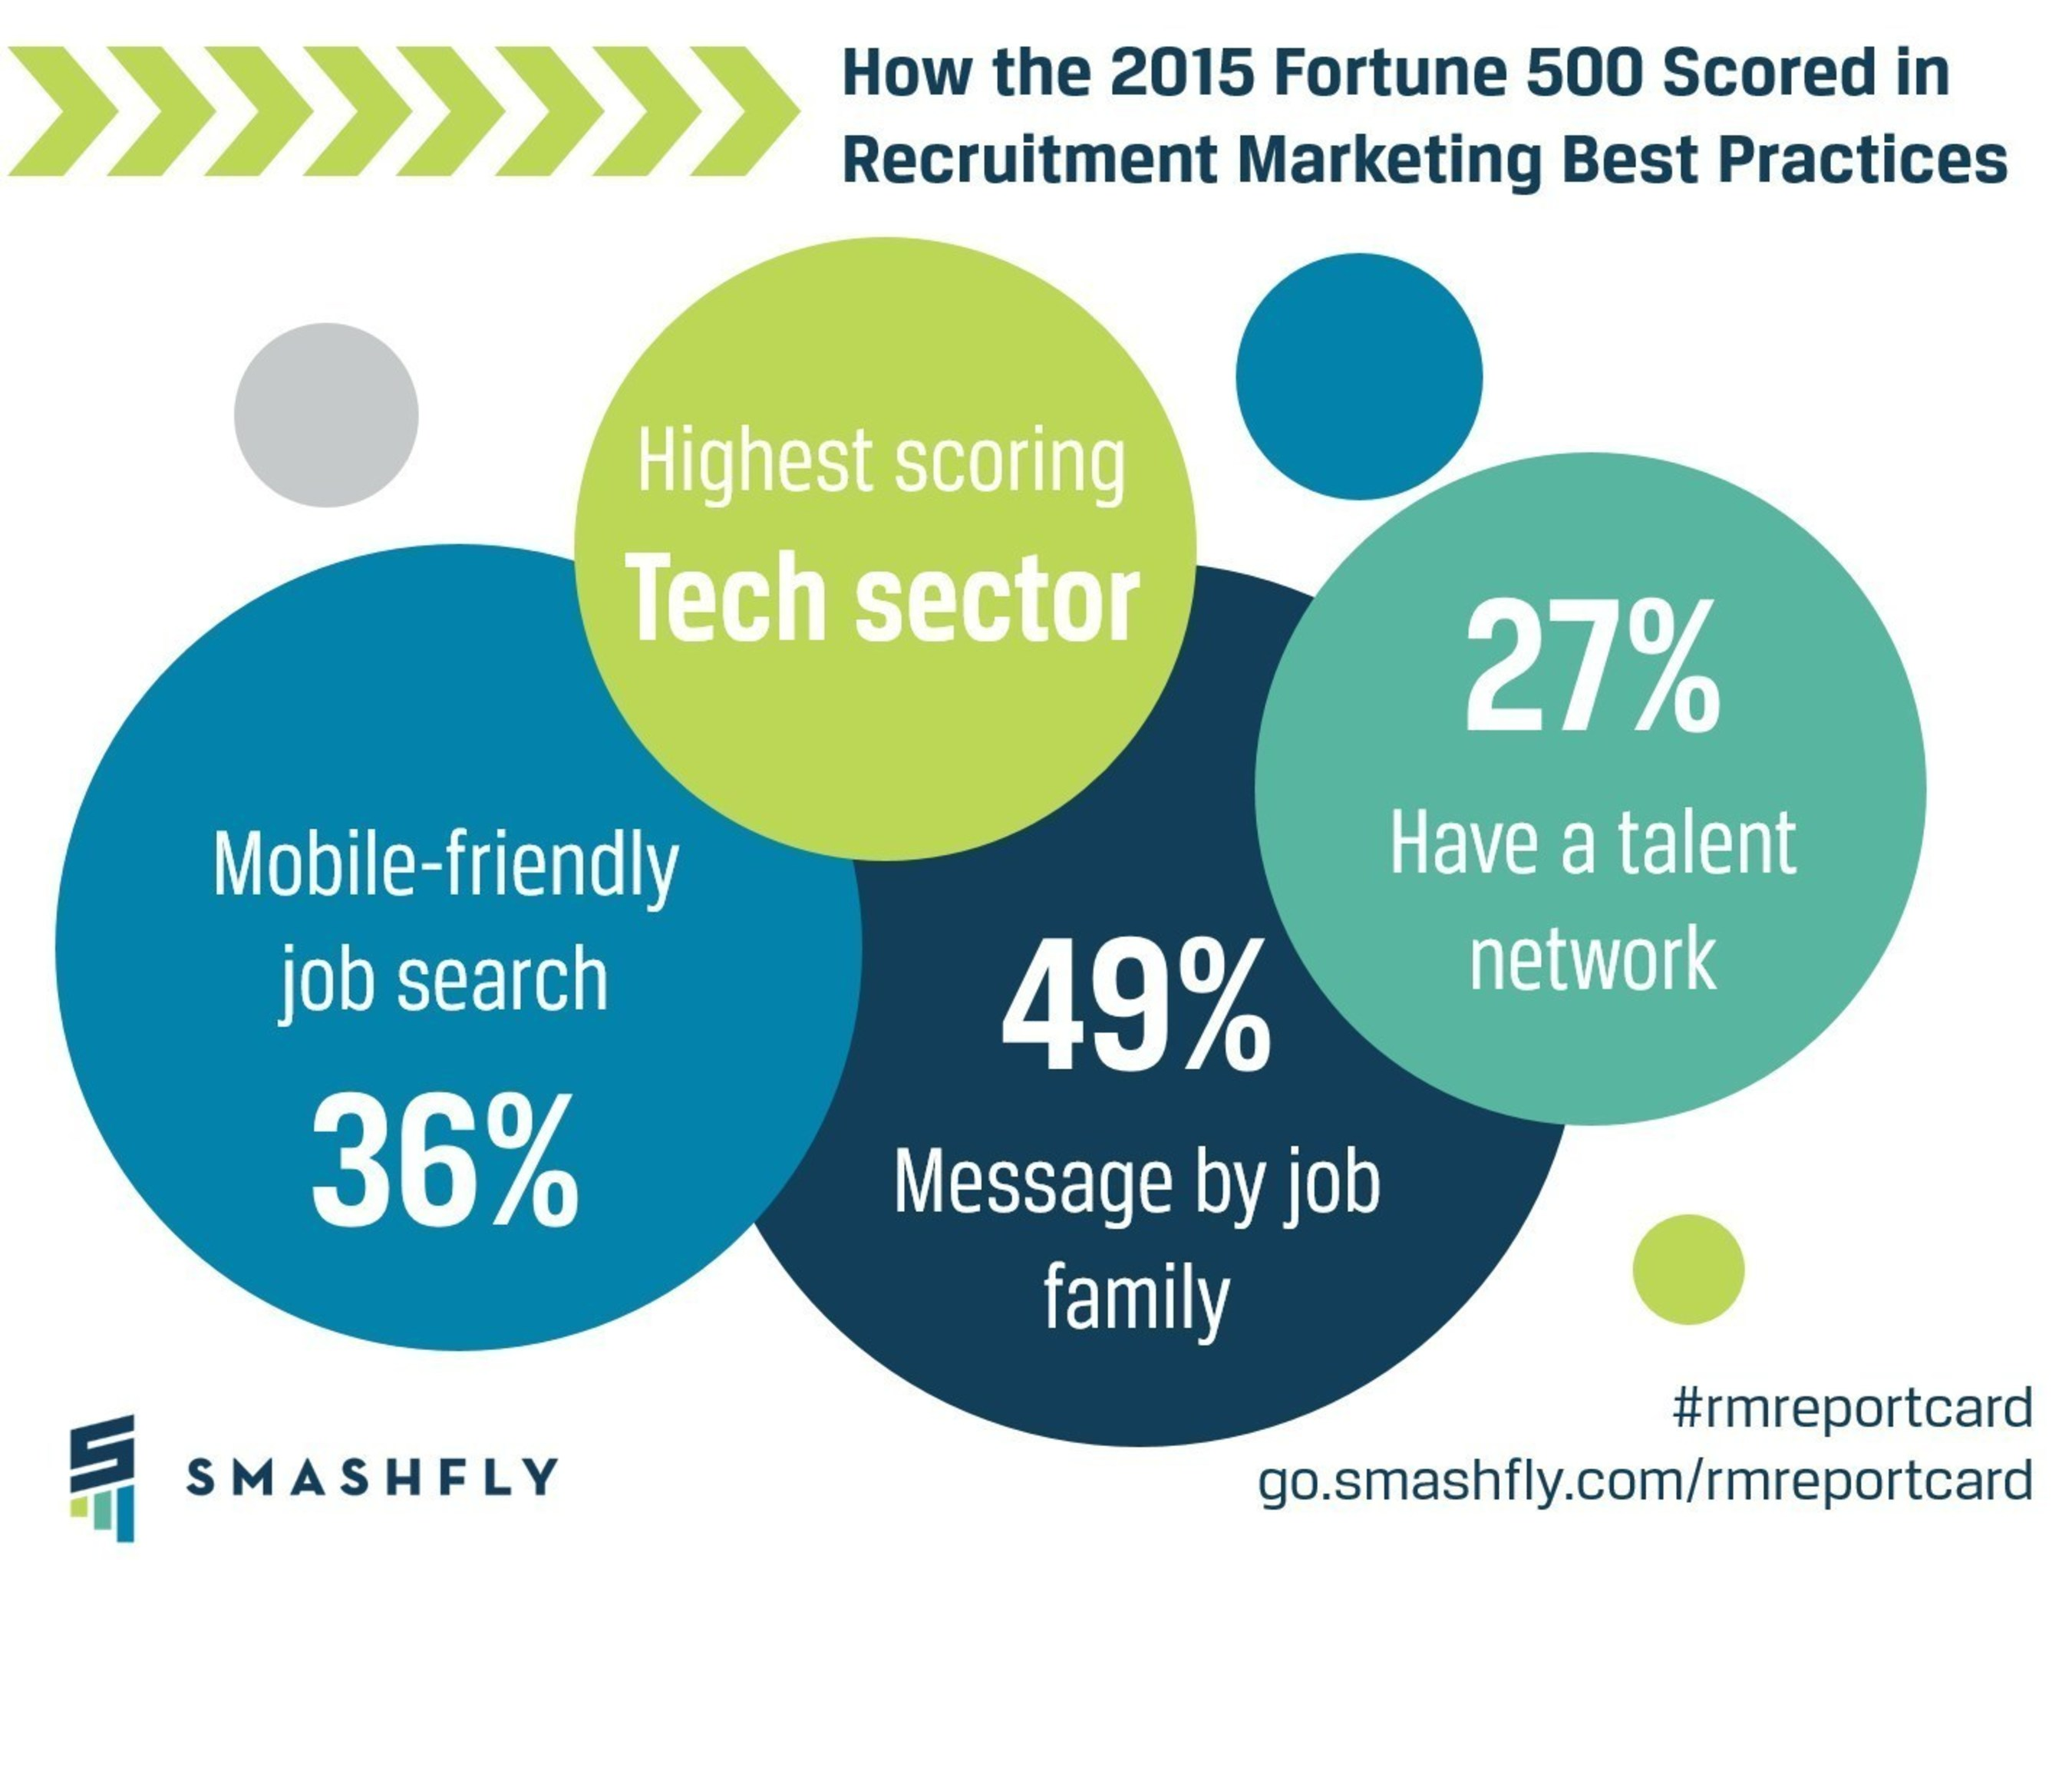 The SmashFly Recruitment Marketing Report Card for the 2015 Fortune 500 provides in-depth analysis of how the largest U.S. companies are using best-practice marketing principles to attract and hire talent.